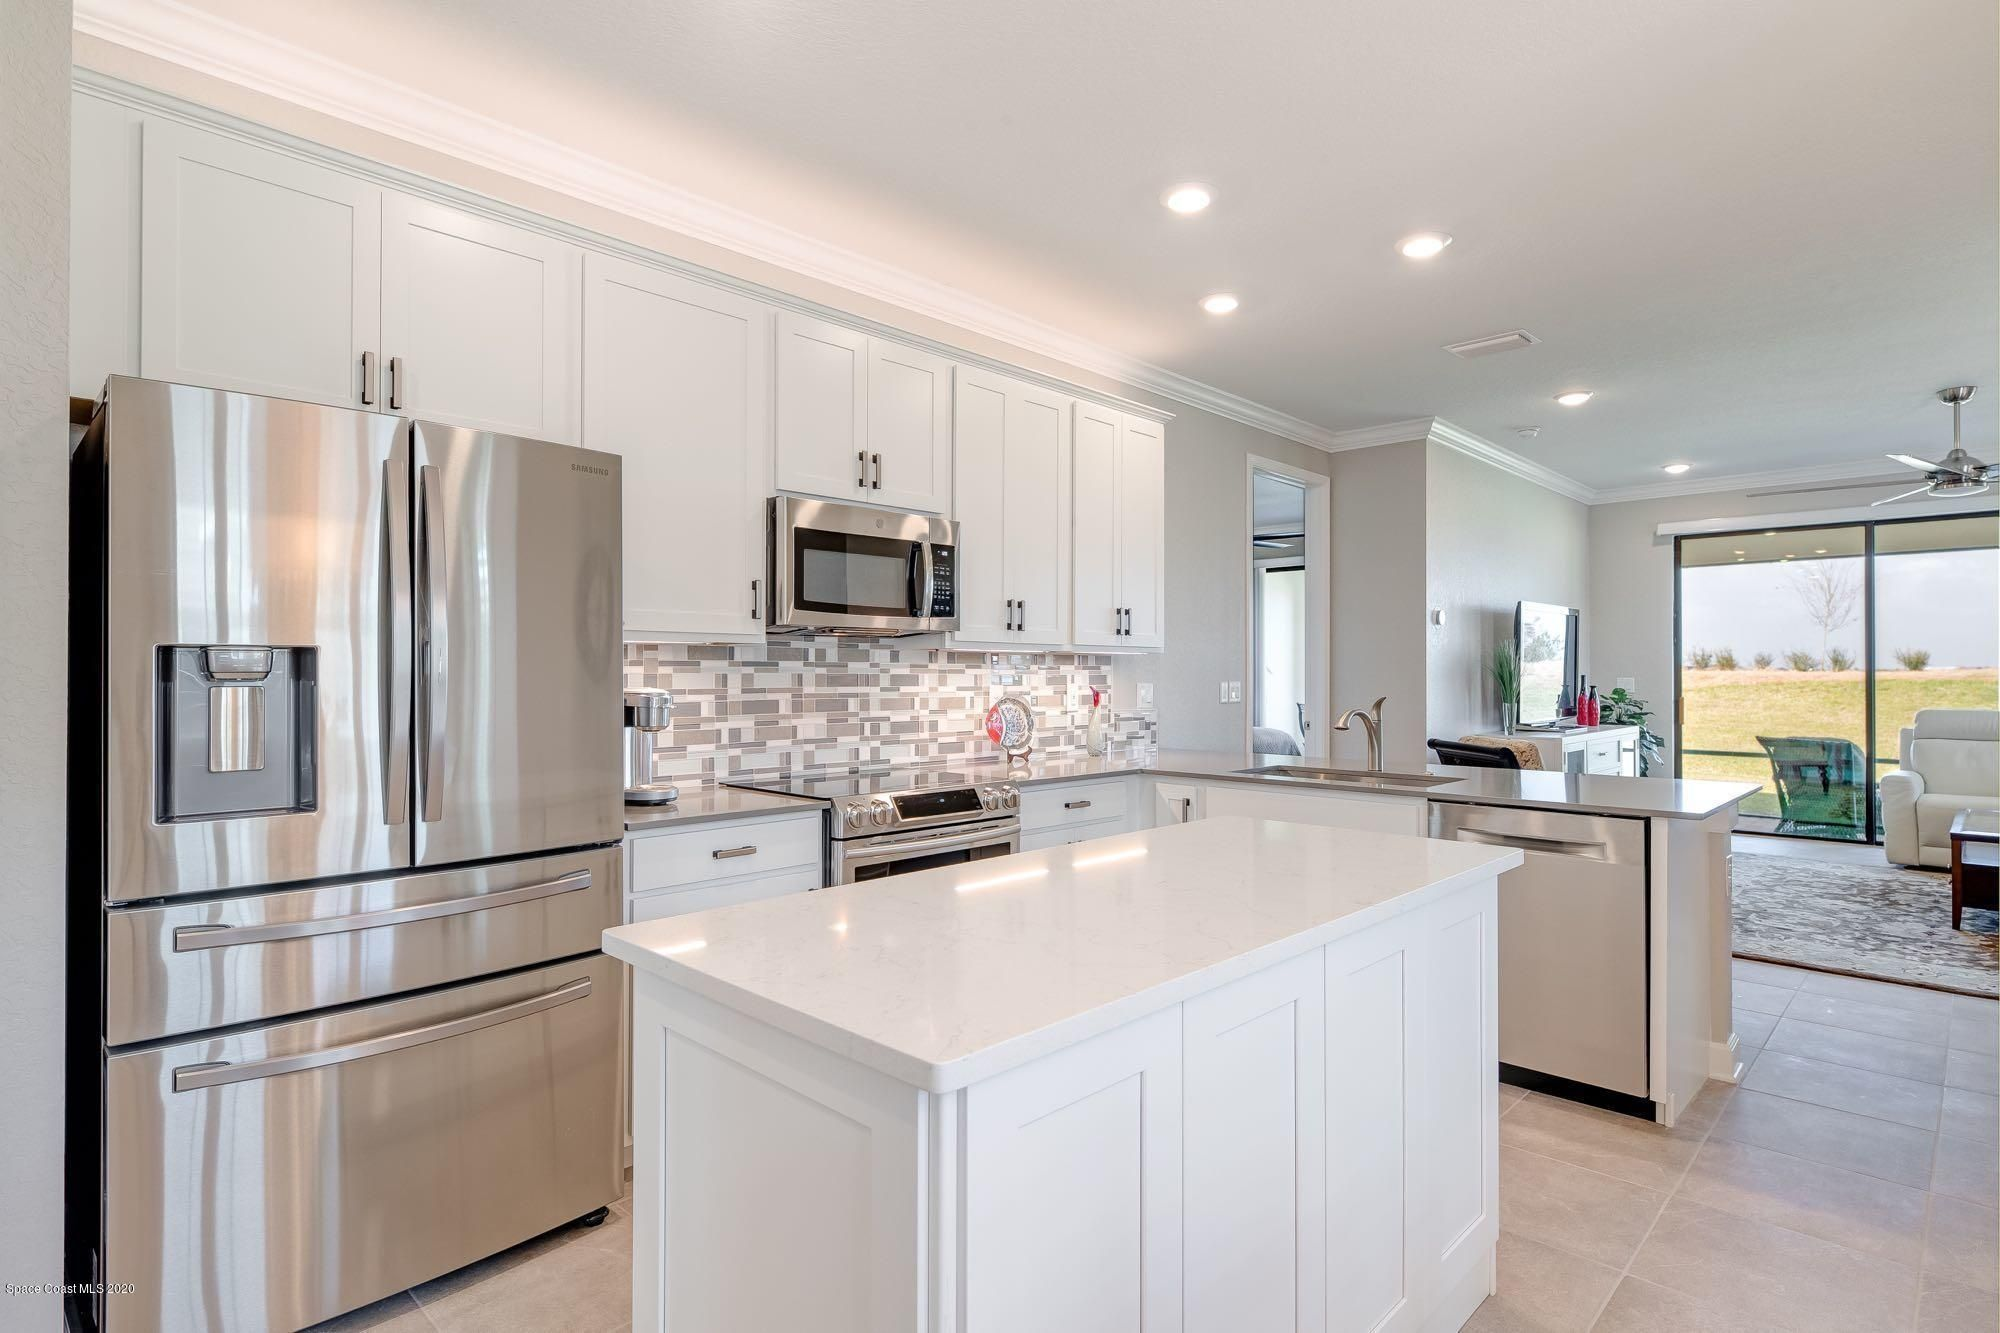 2640 Treasure Cay Lane Melbourne Fl 289 900 In 2020 Backsplash Designs Entry Doors With Glass Upgraded Appliances